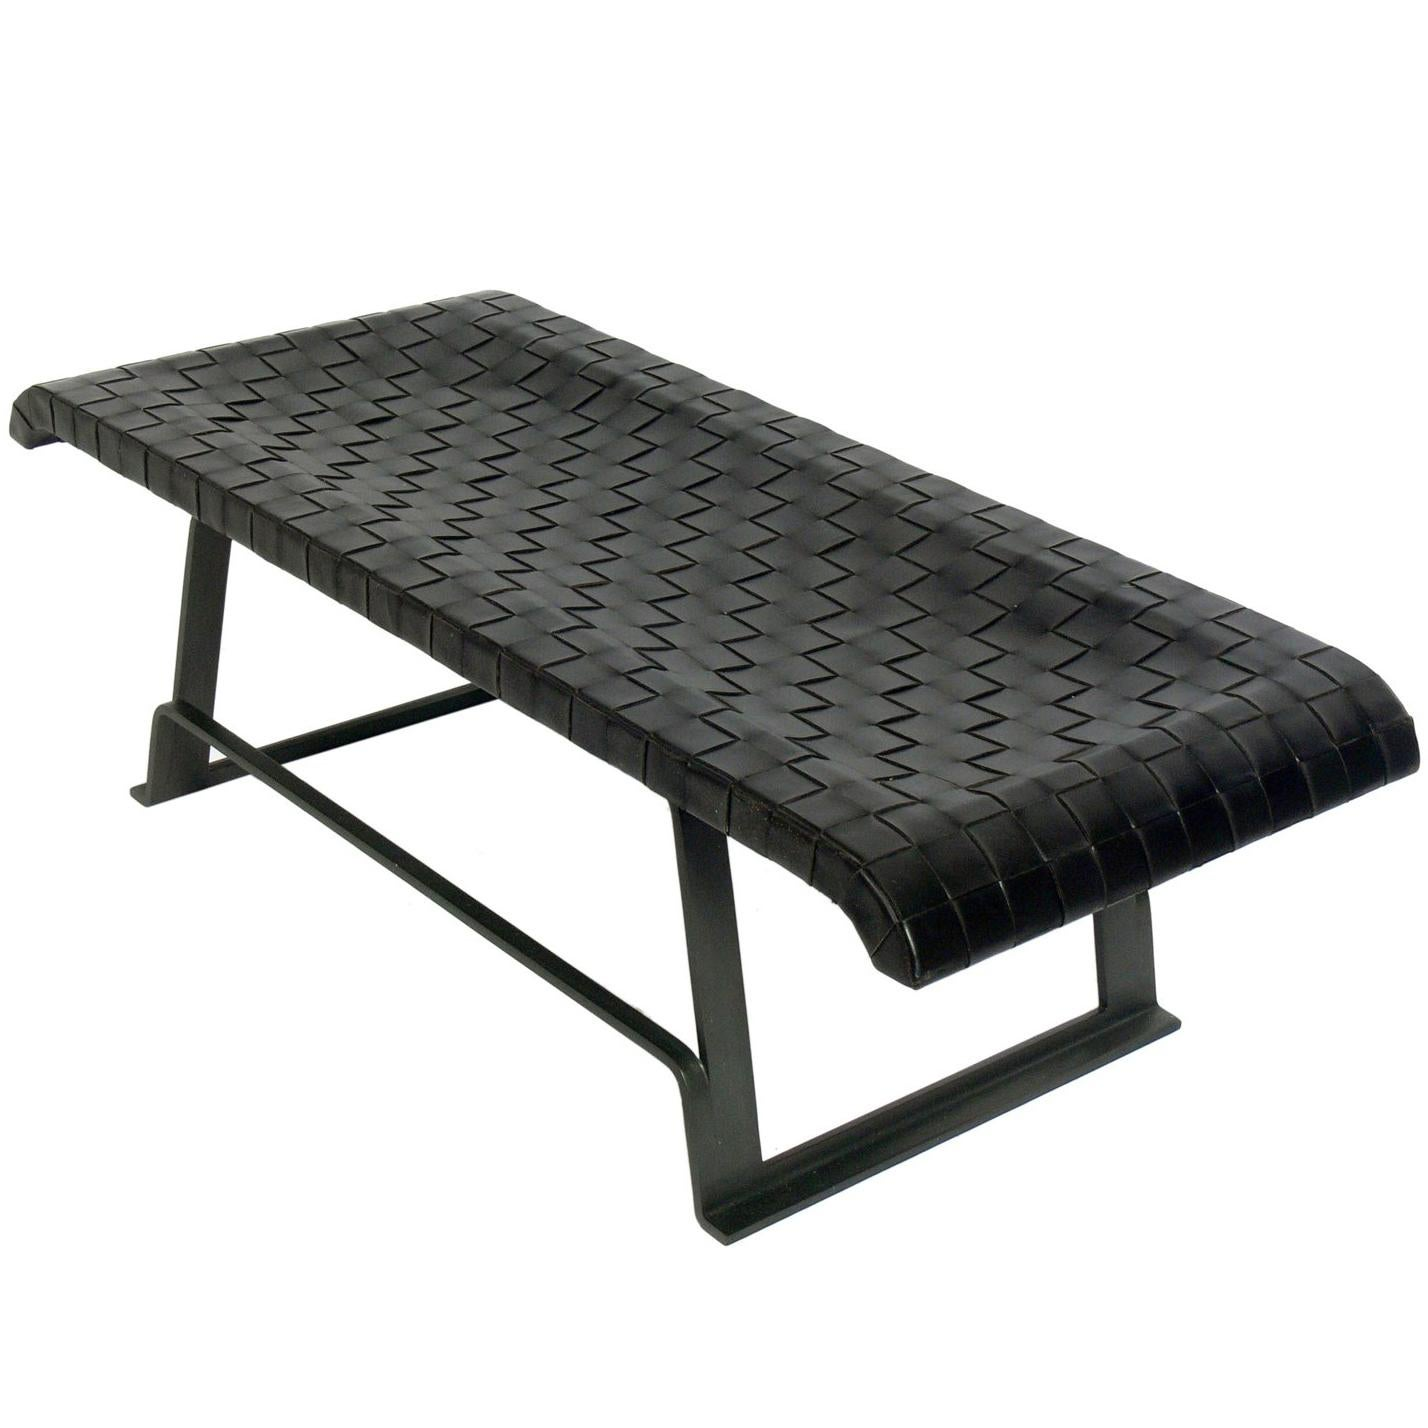 Fabulous Woven Leather Bench 29 For Sale On 1Stdibs Inzonedesignstudio Interior Chair Design Inzonedesignstudiocom